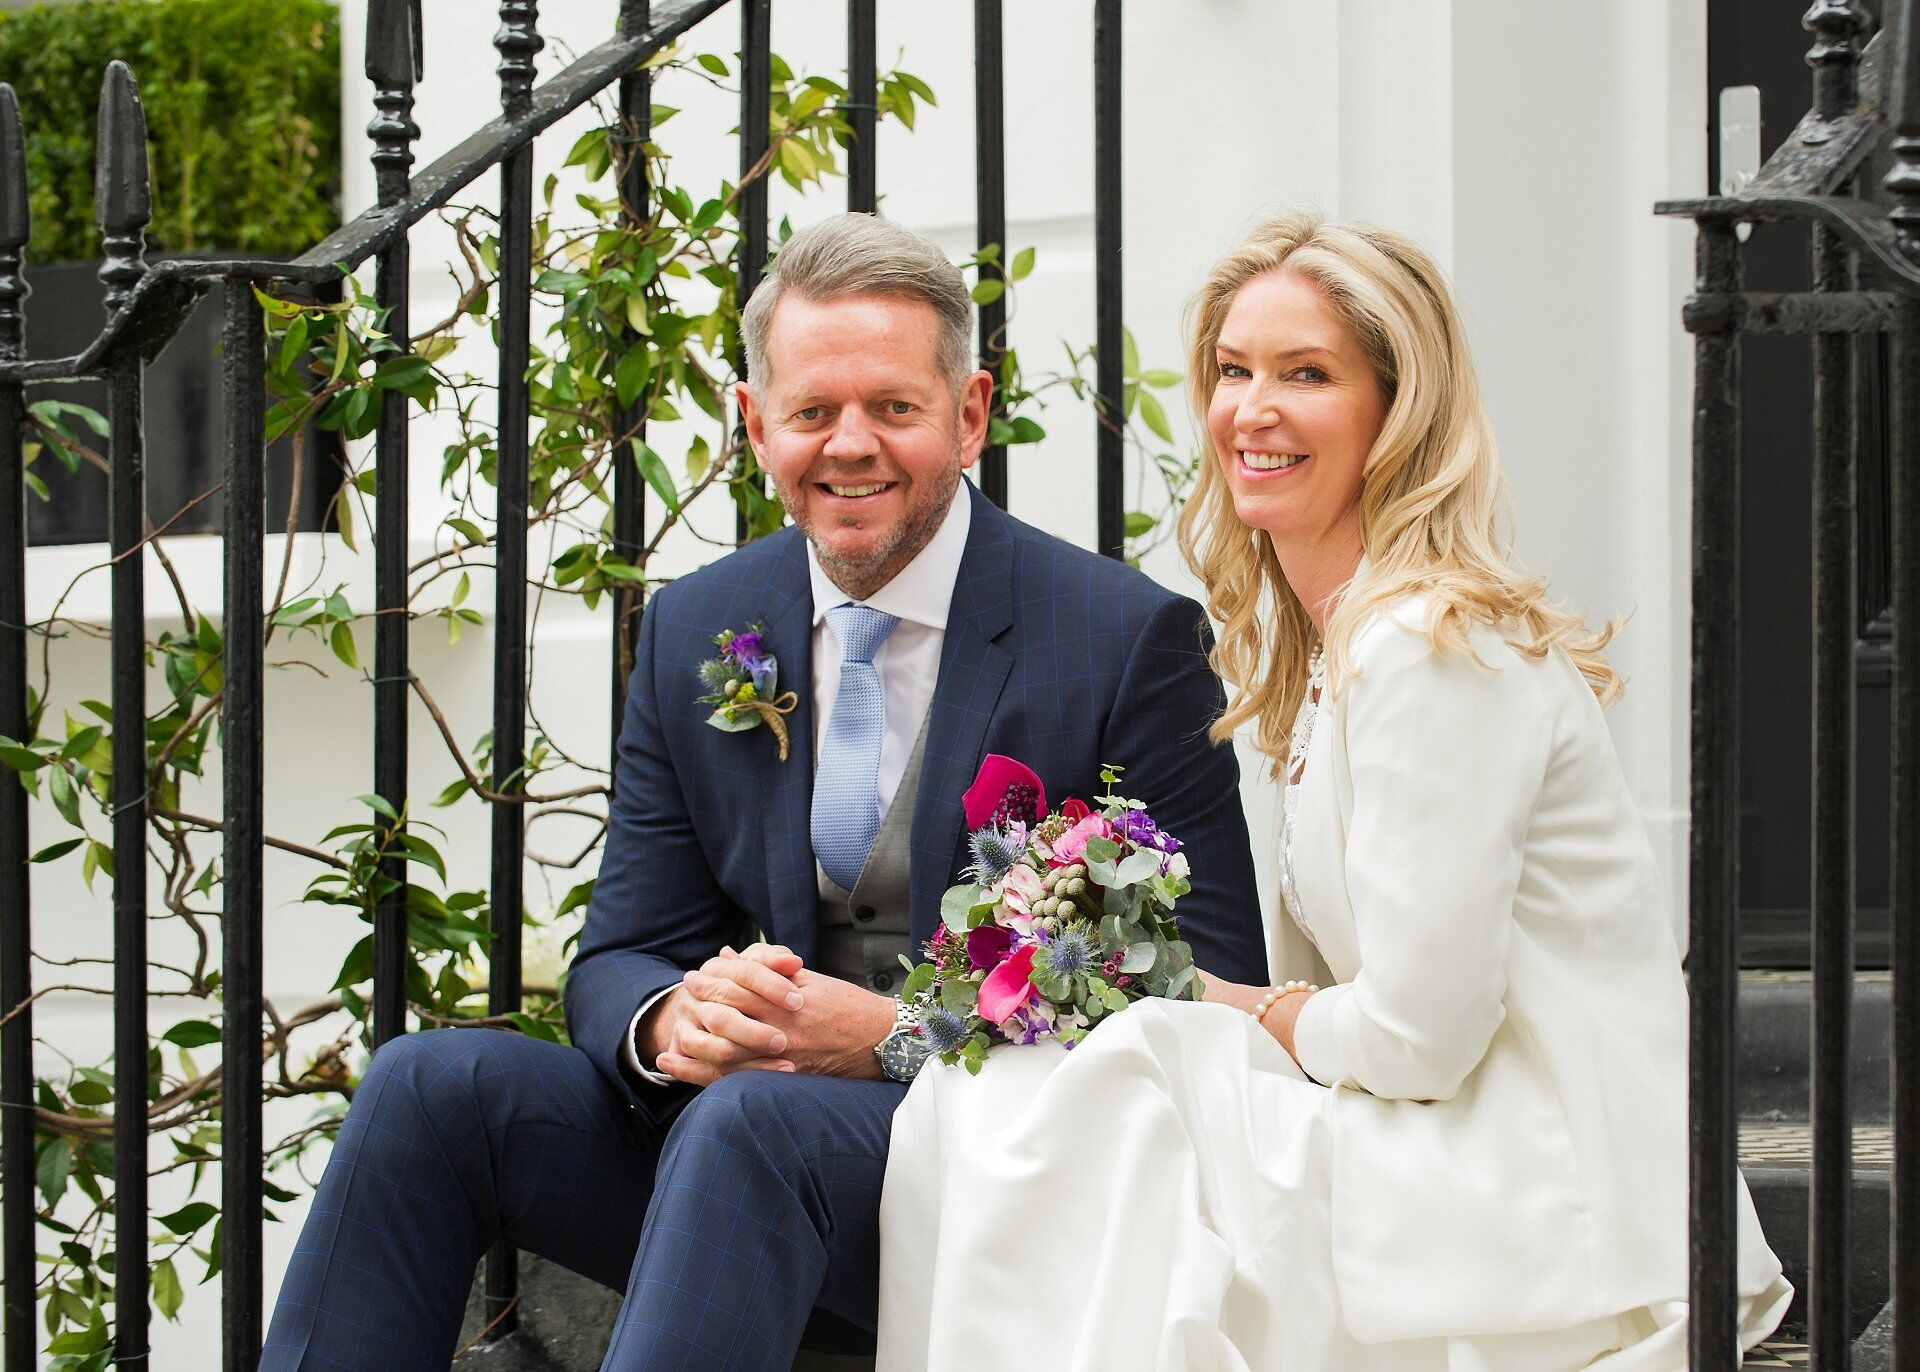 choose expert chelsea old town hall wedding photography for your small chelsea wedding using black railings and white stucco buildings typical of chelsea village